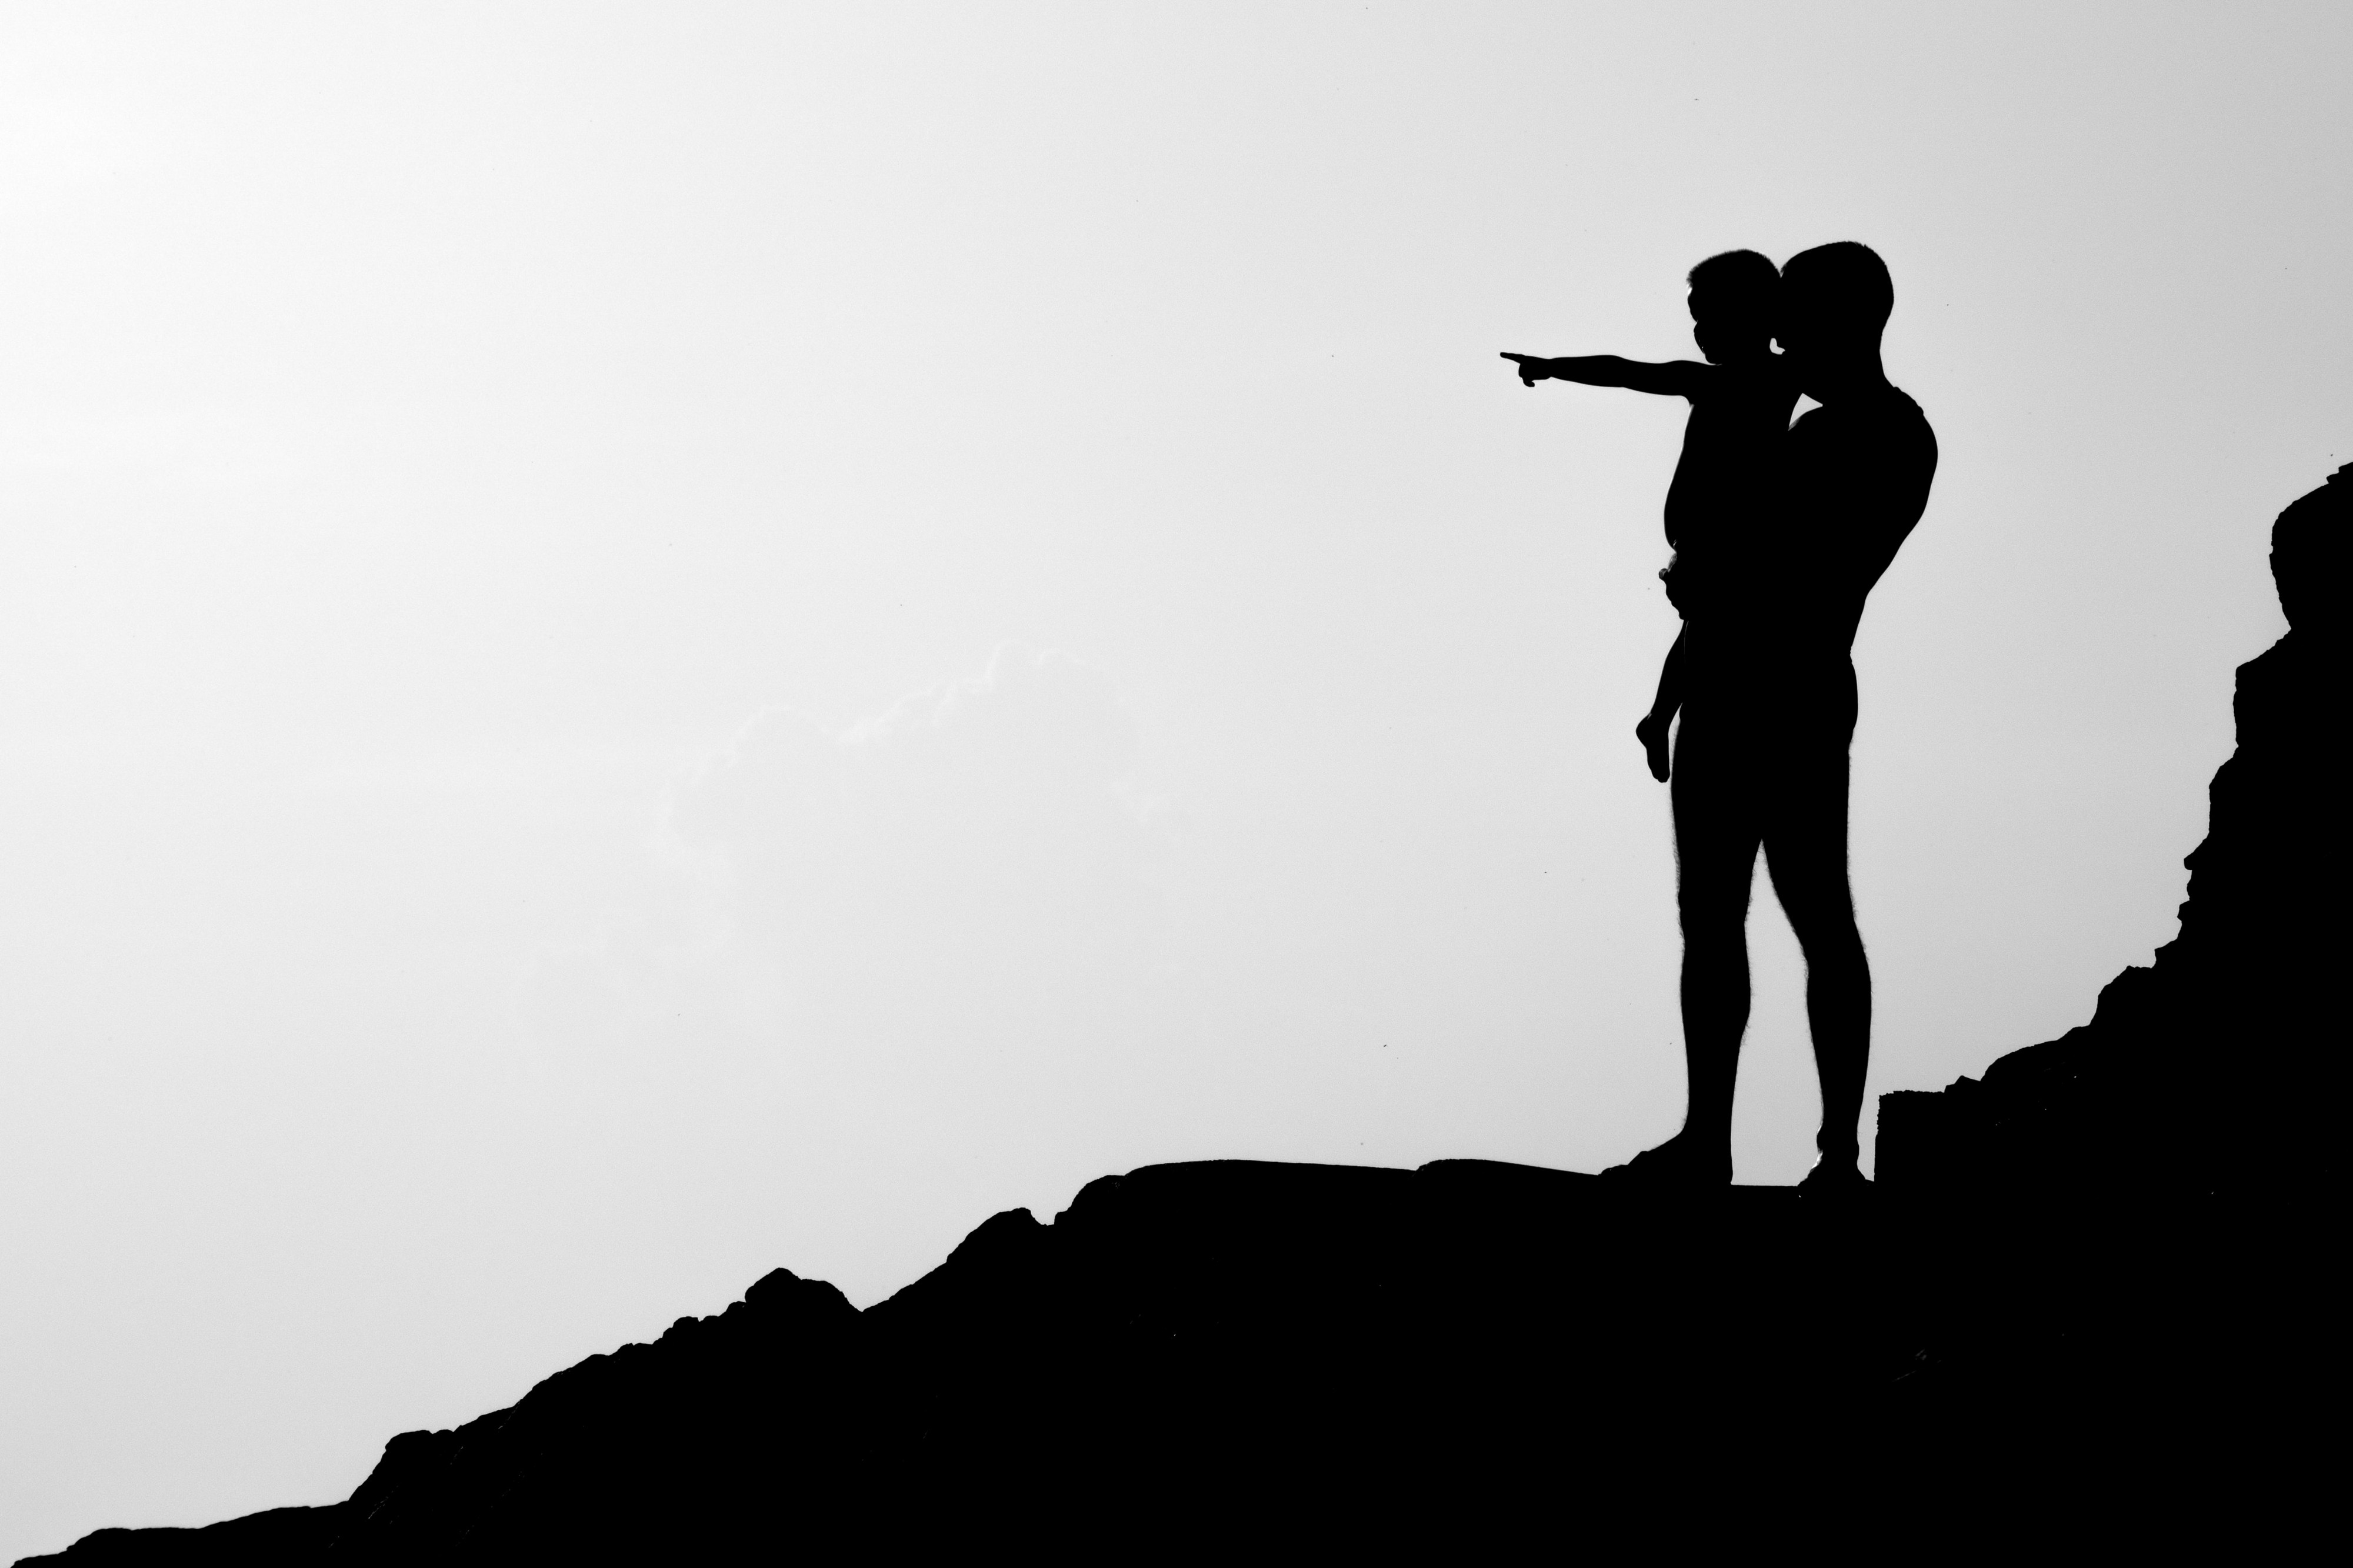 black and white photo silhouette of man holding child standing on rocky hillside child pointing